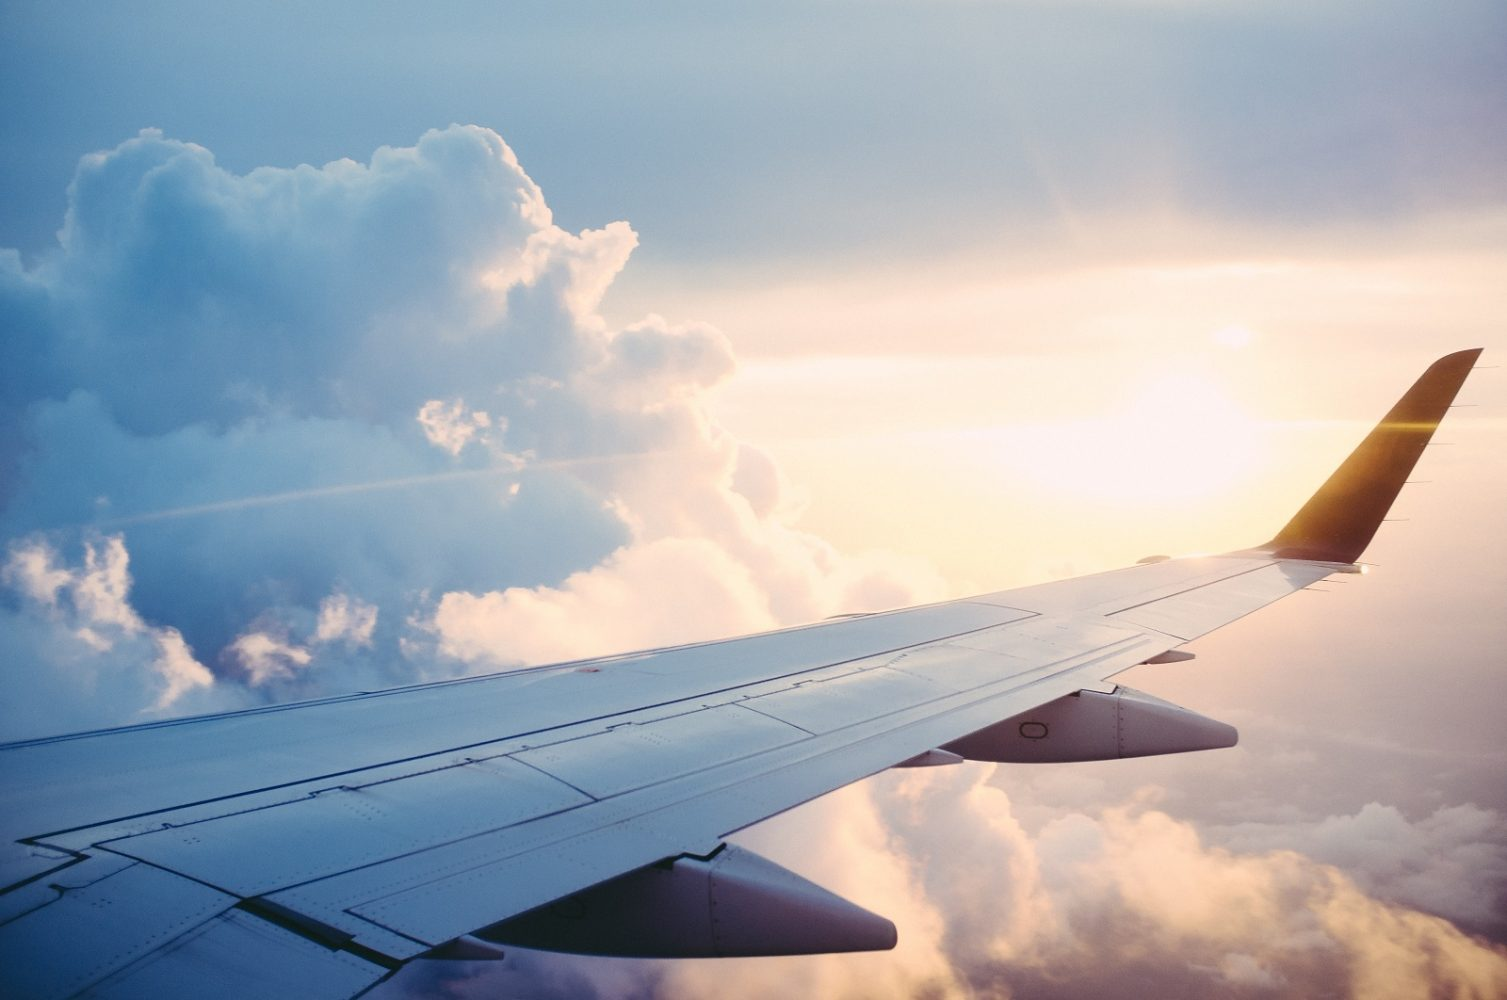 Airplane Wing. Photo by Ross Parmly on Unsplash